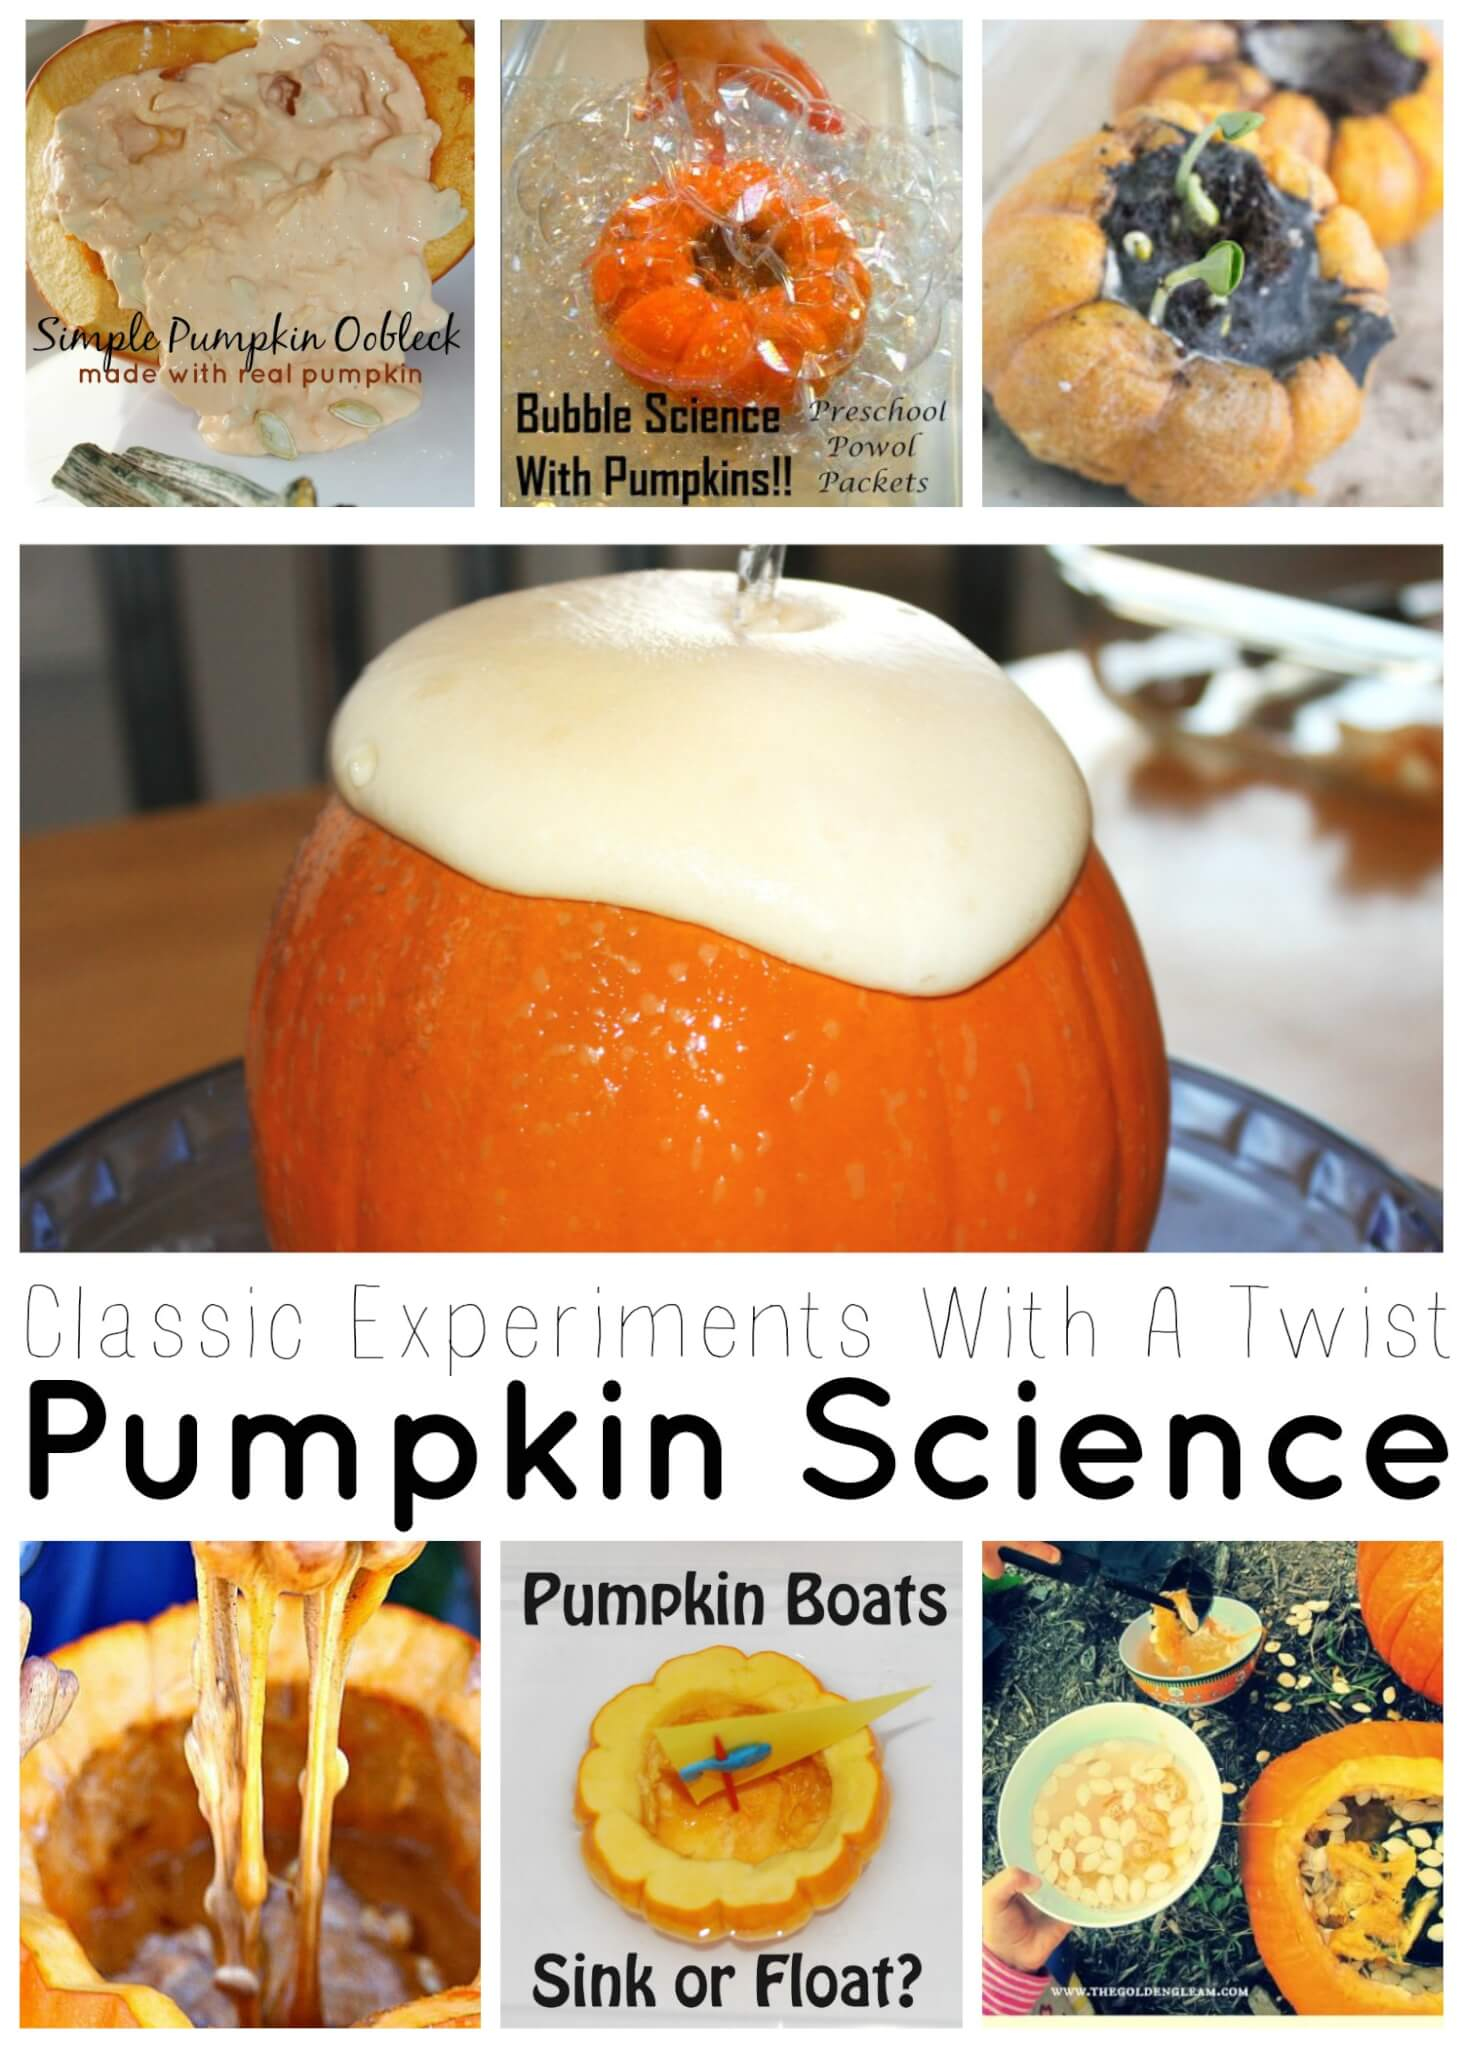 Pumpkin Science Experiments Classics With A Twist